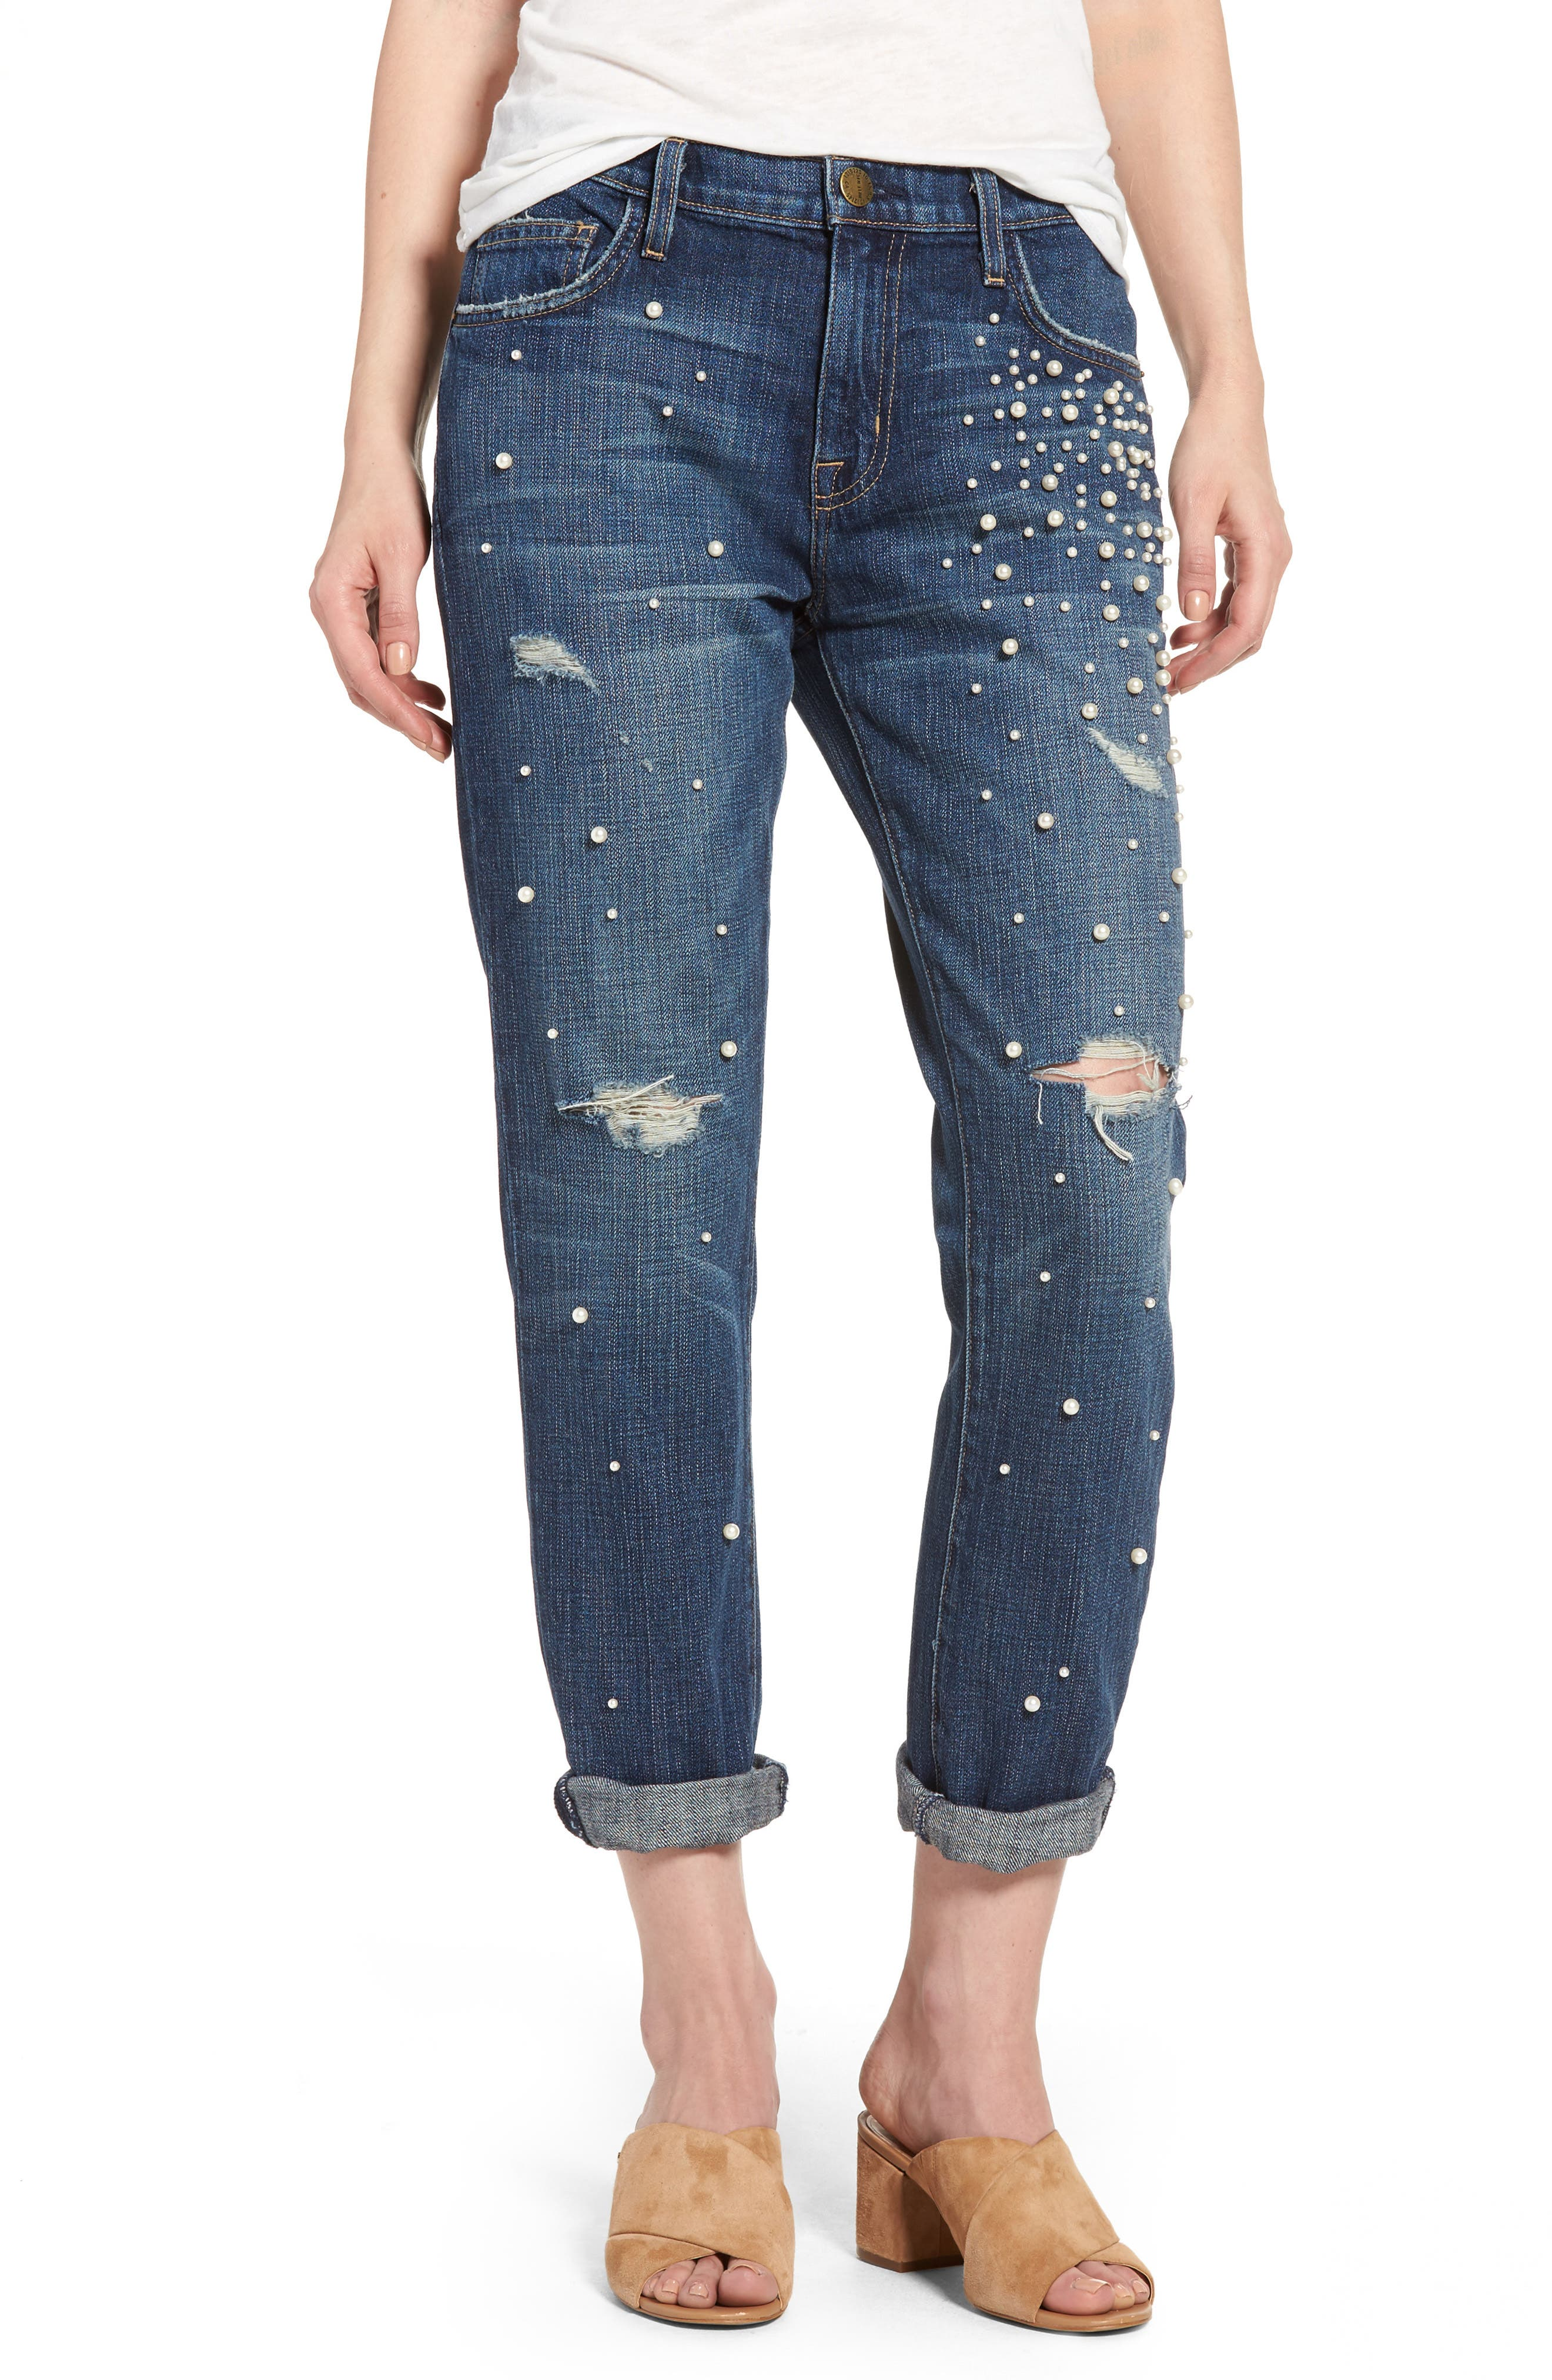 Main Image - Current/Elliott 'The Fling' Boyfriend Jeans (Loved)